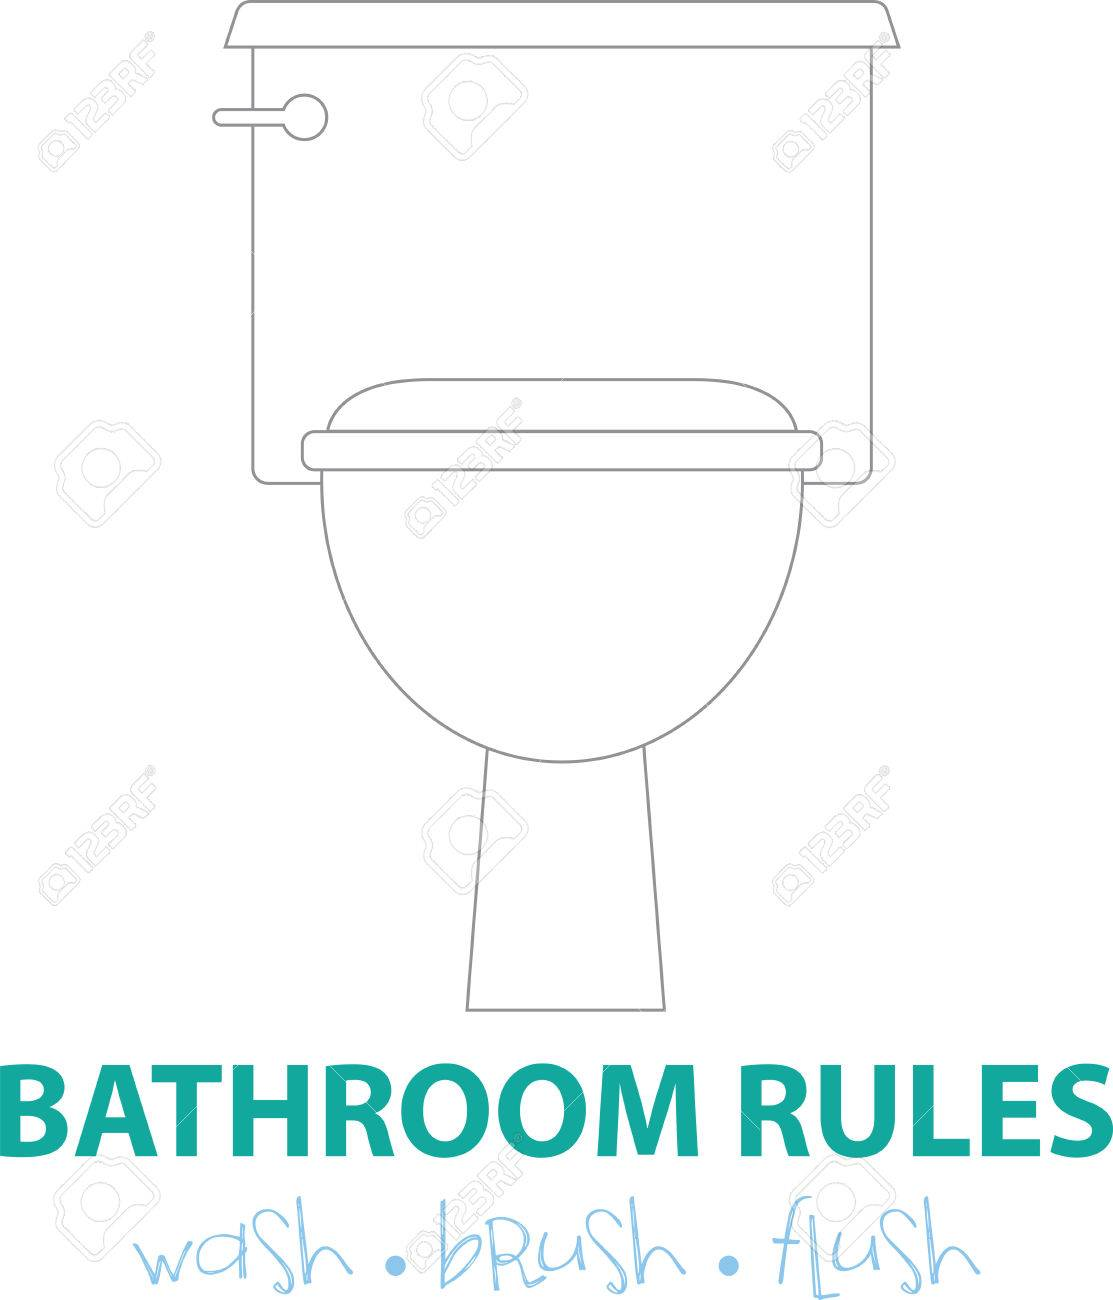 Toilet Of Wc Etiquette.Toilet Etiquette Is All About Hygiene And Cleanliness So Get